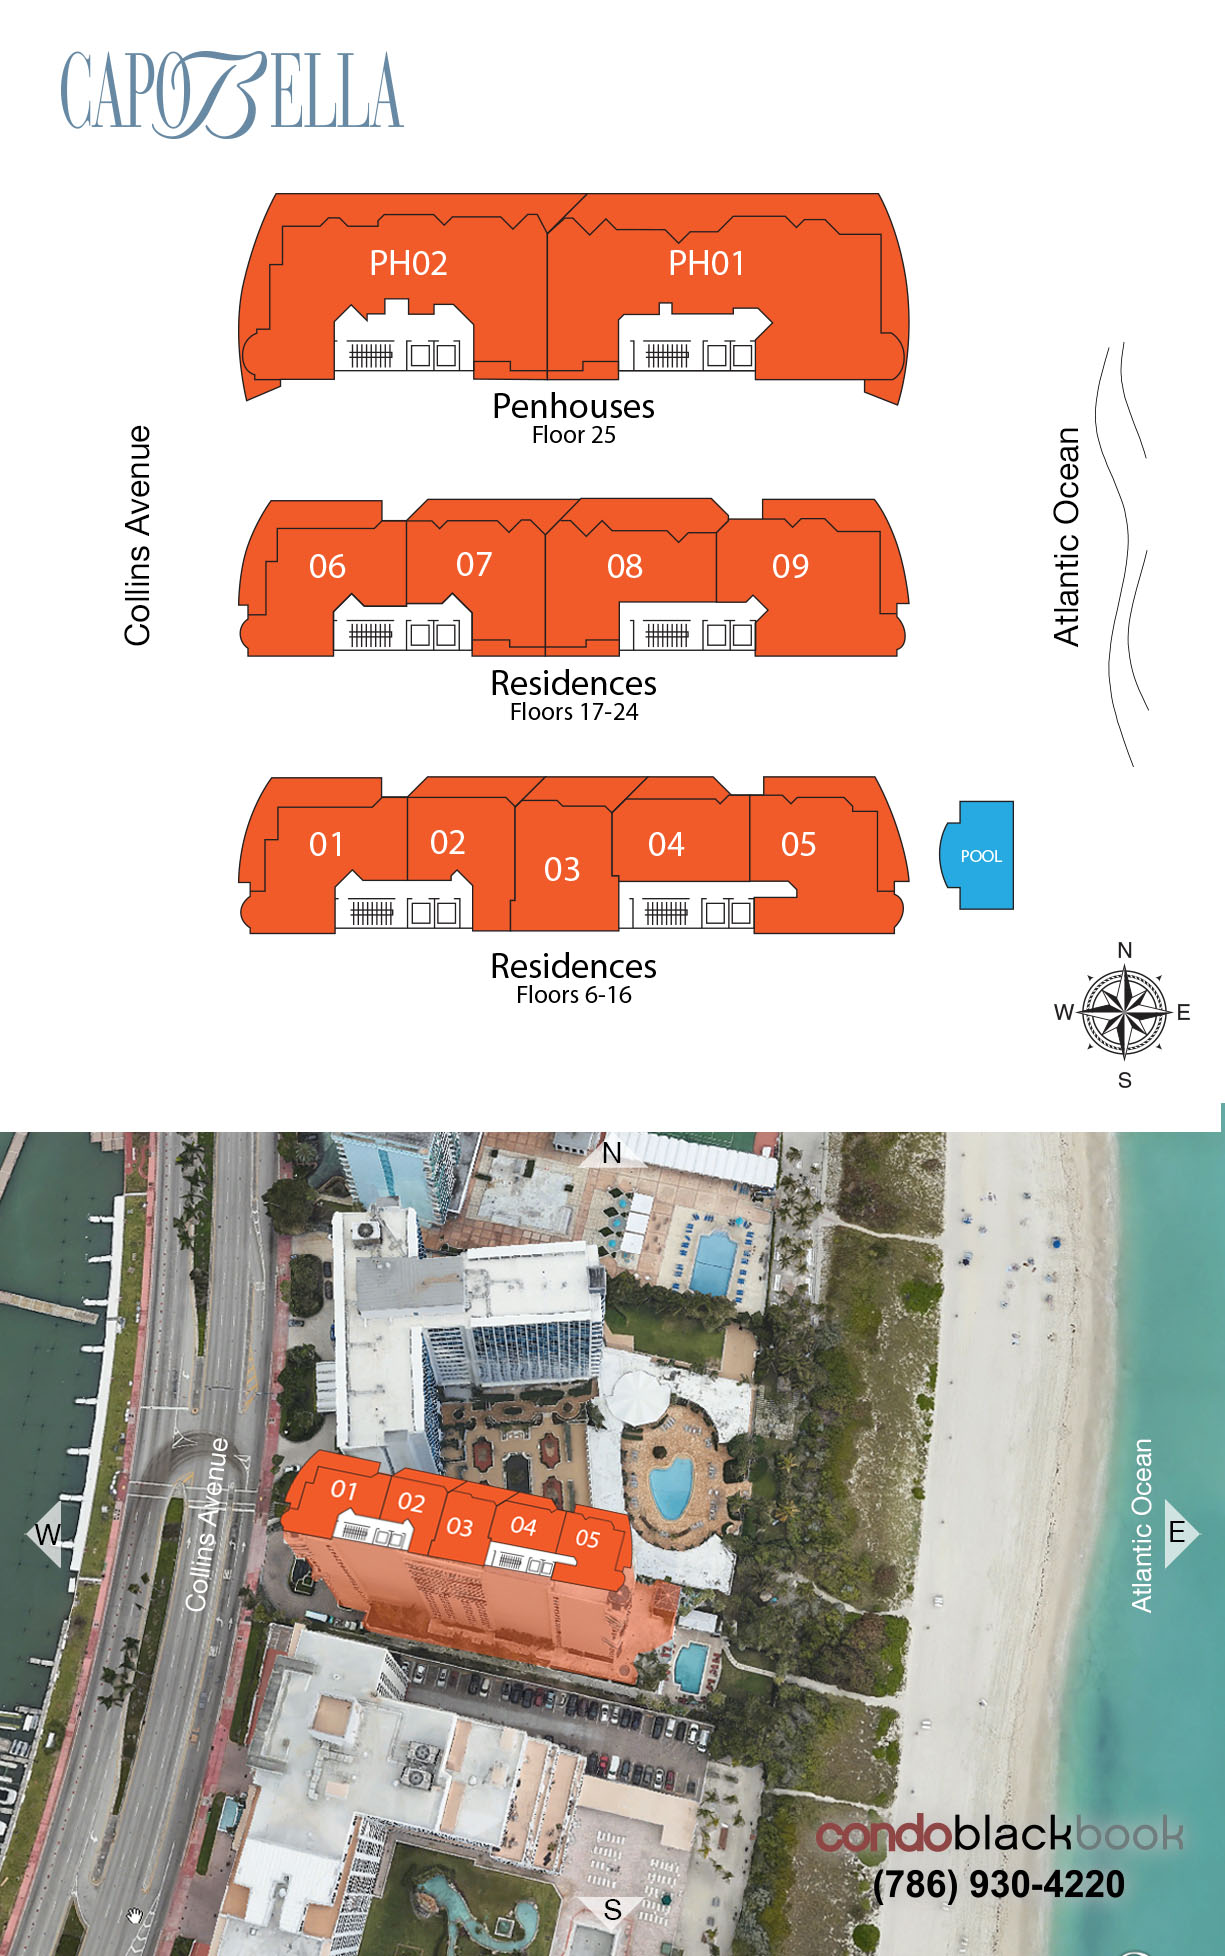 Capobella floorplan and site plan